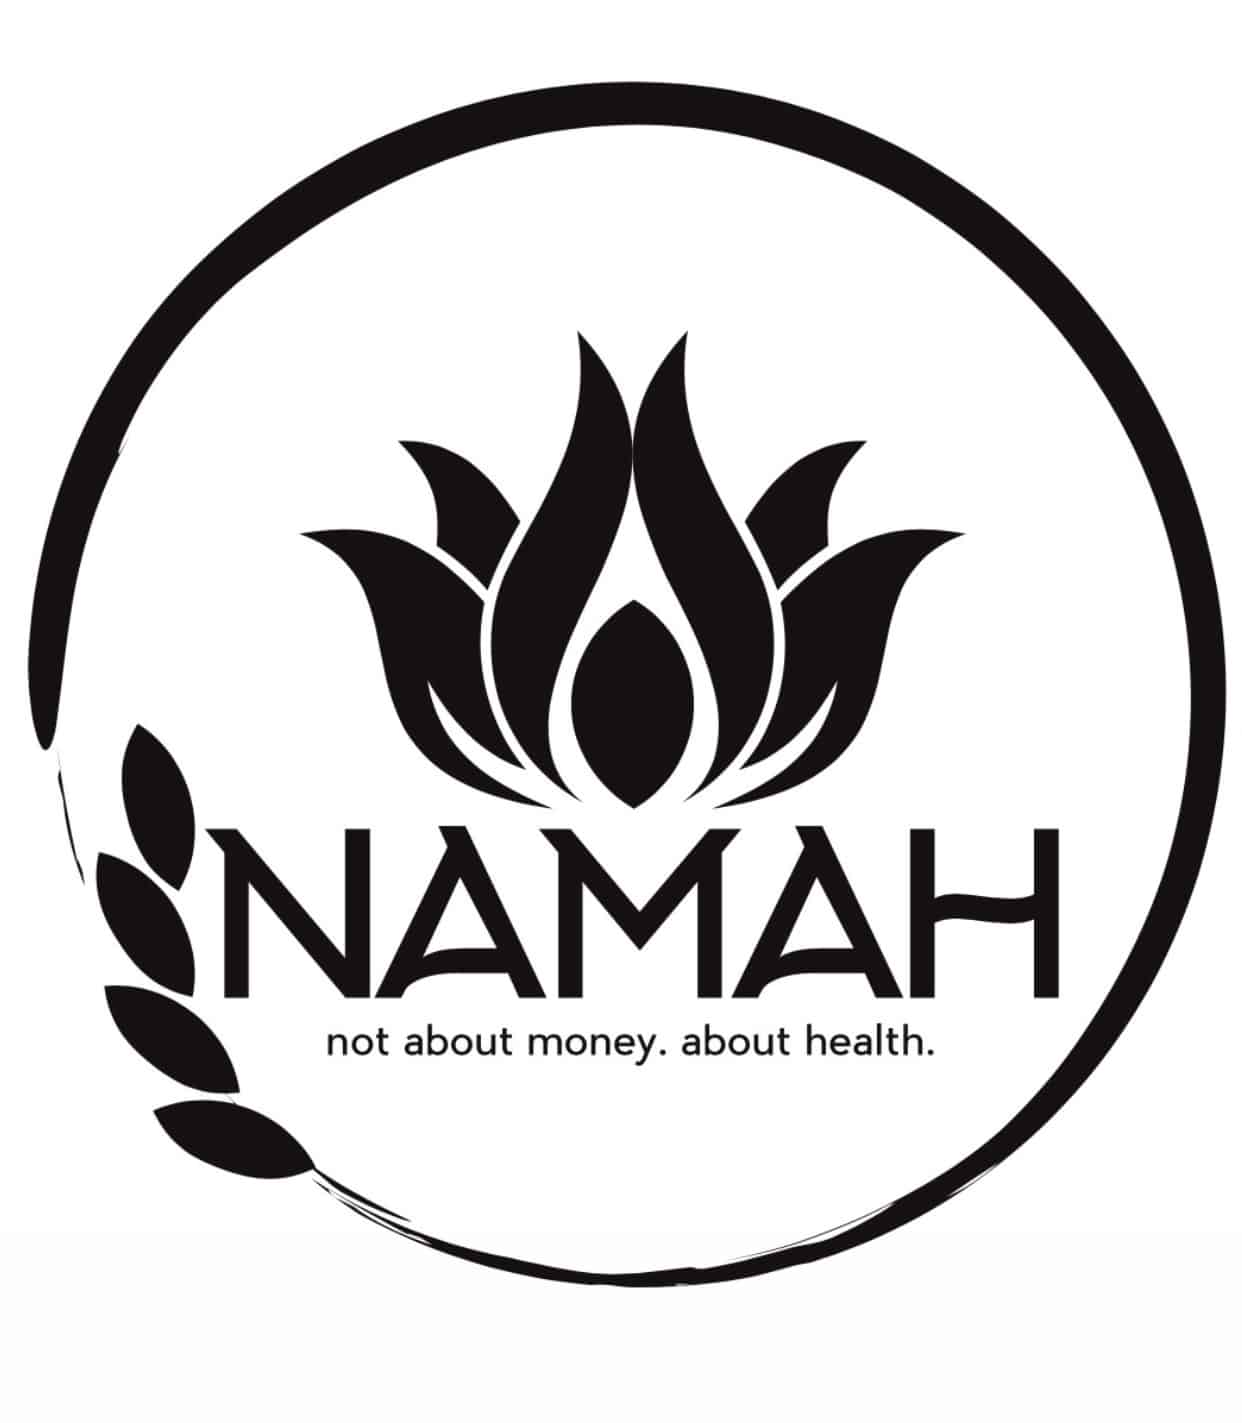 The official logo of NAMAH which is an herbal remedy store in Oklahoma